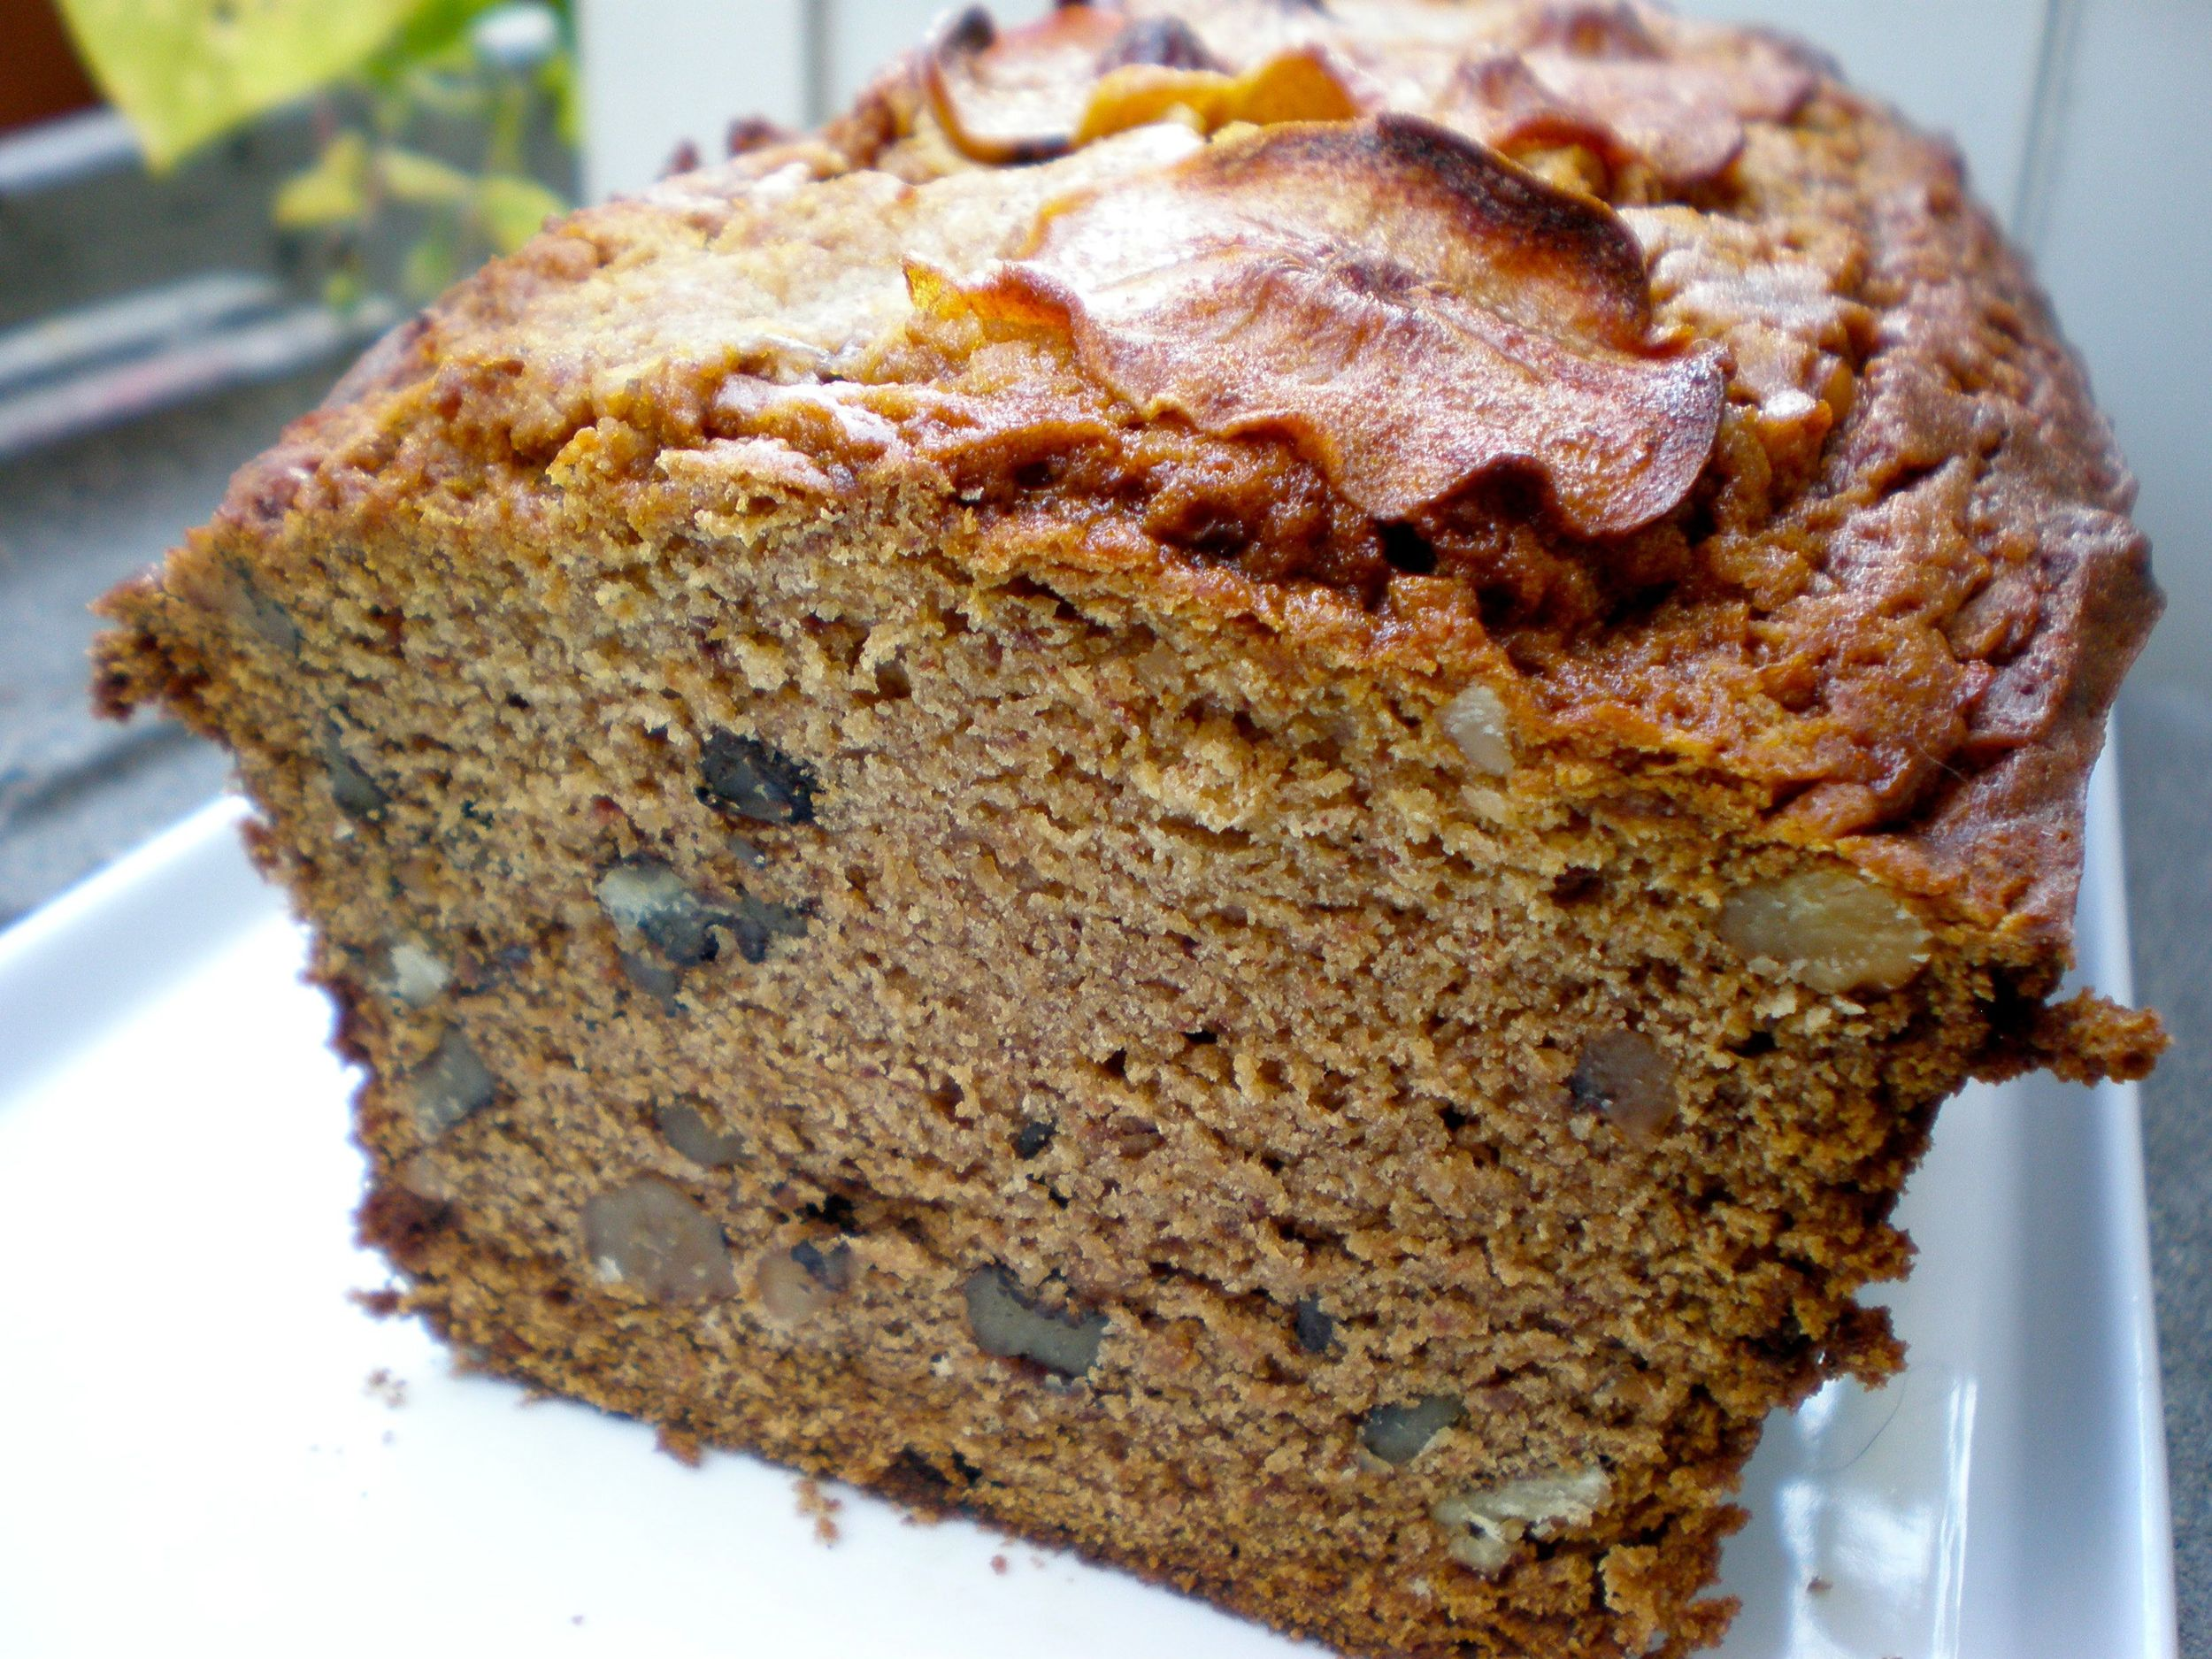 Persimmon bread loaf